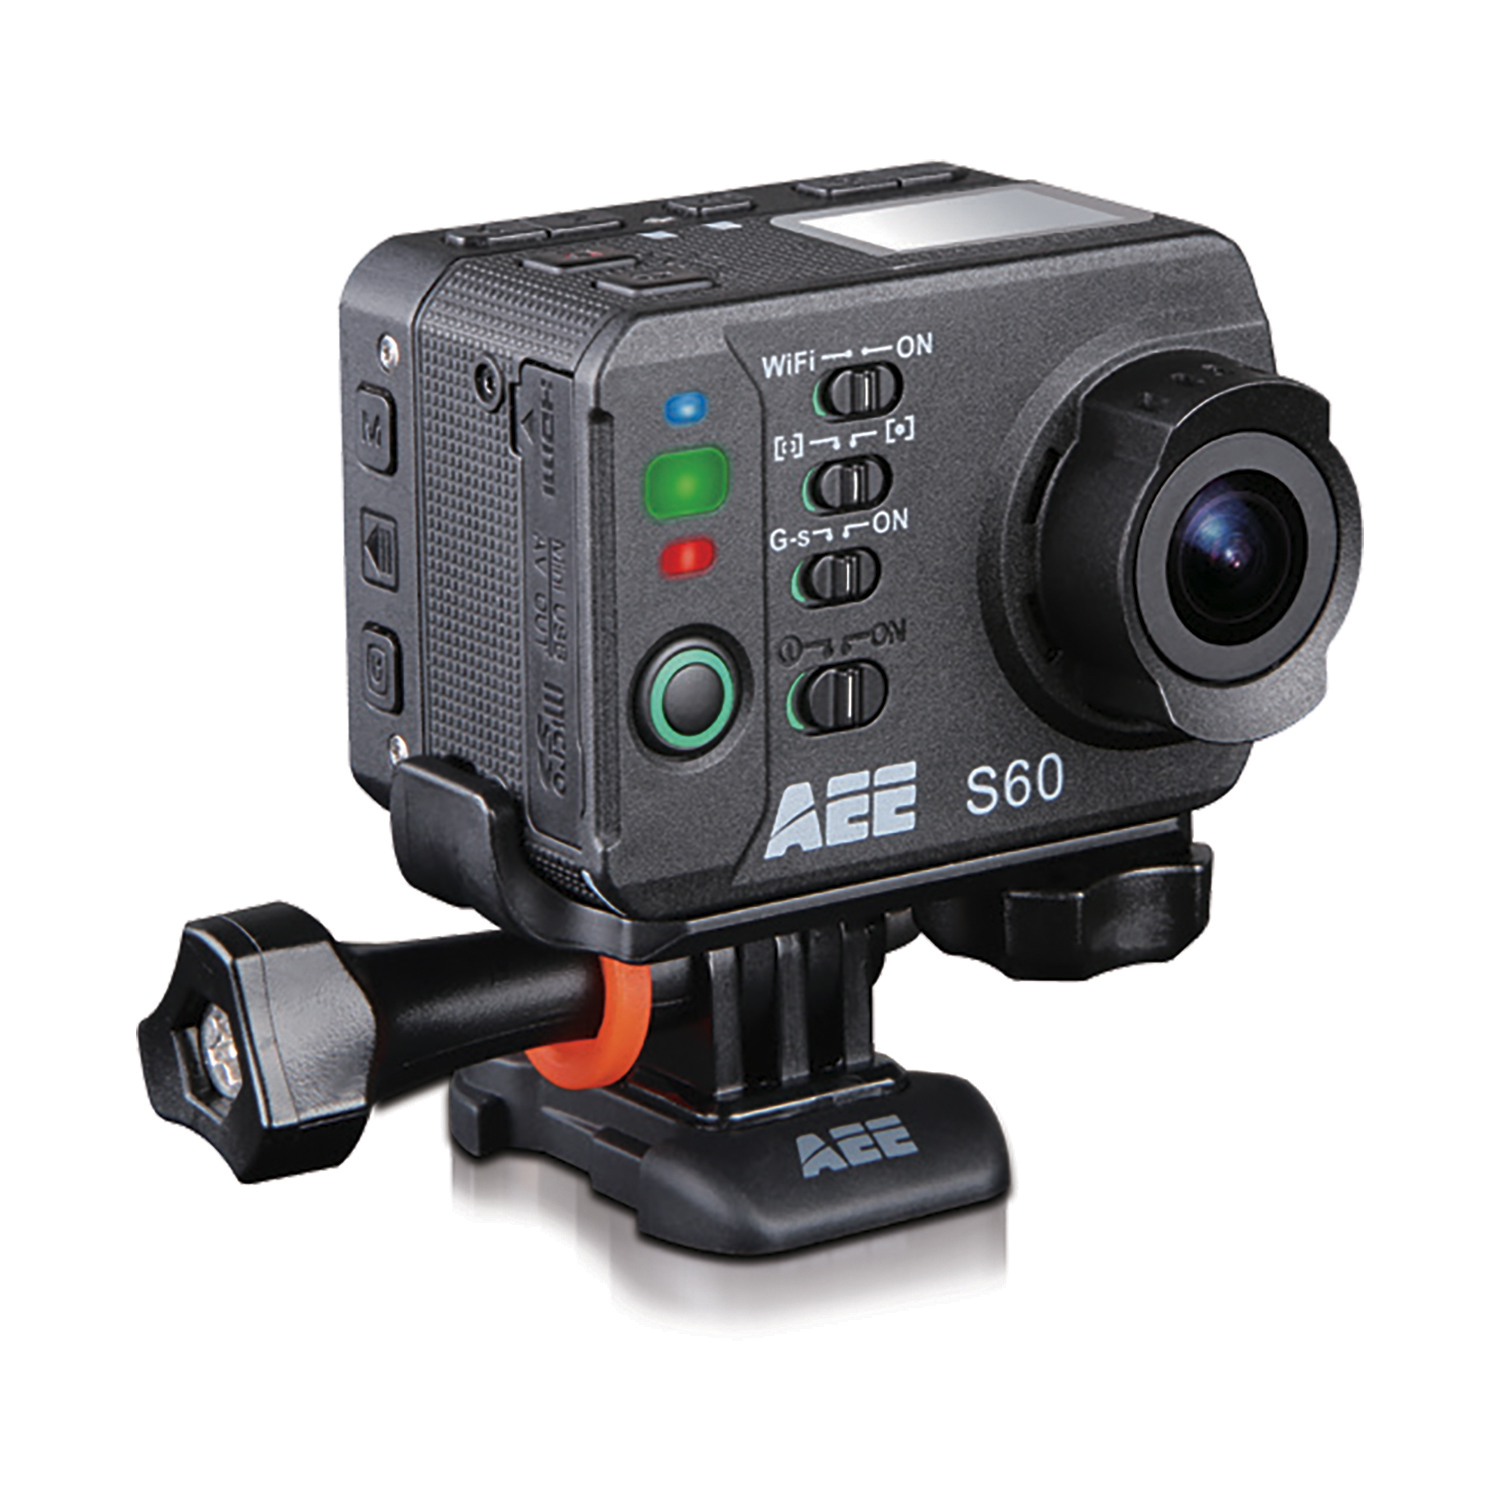 Included in the pack : S60 action cam Up-to-100m waterproof…